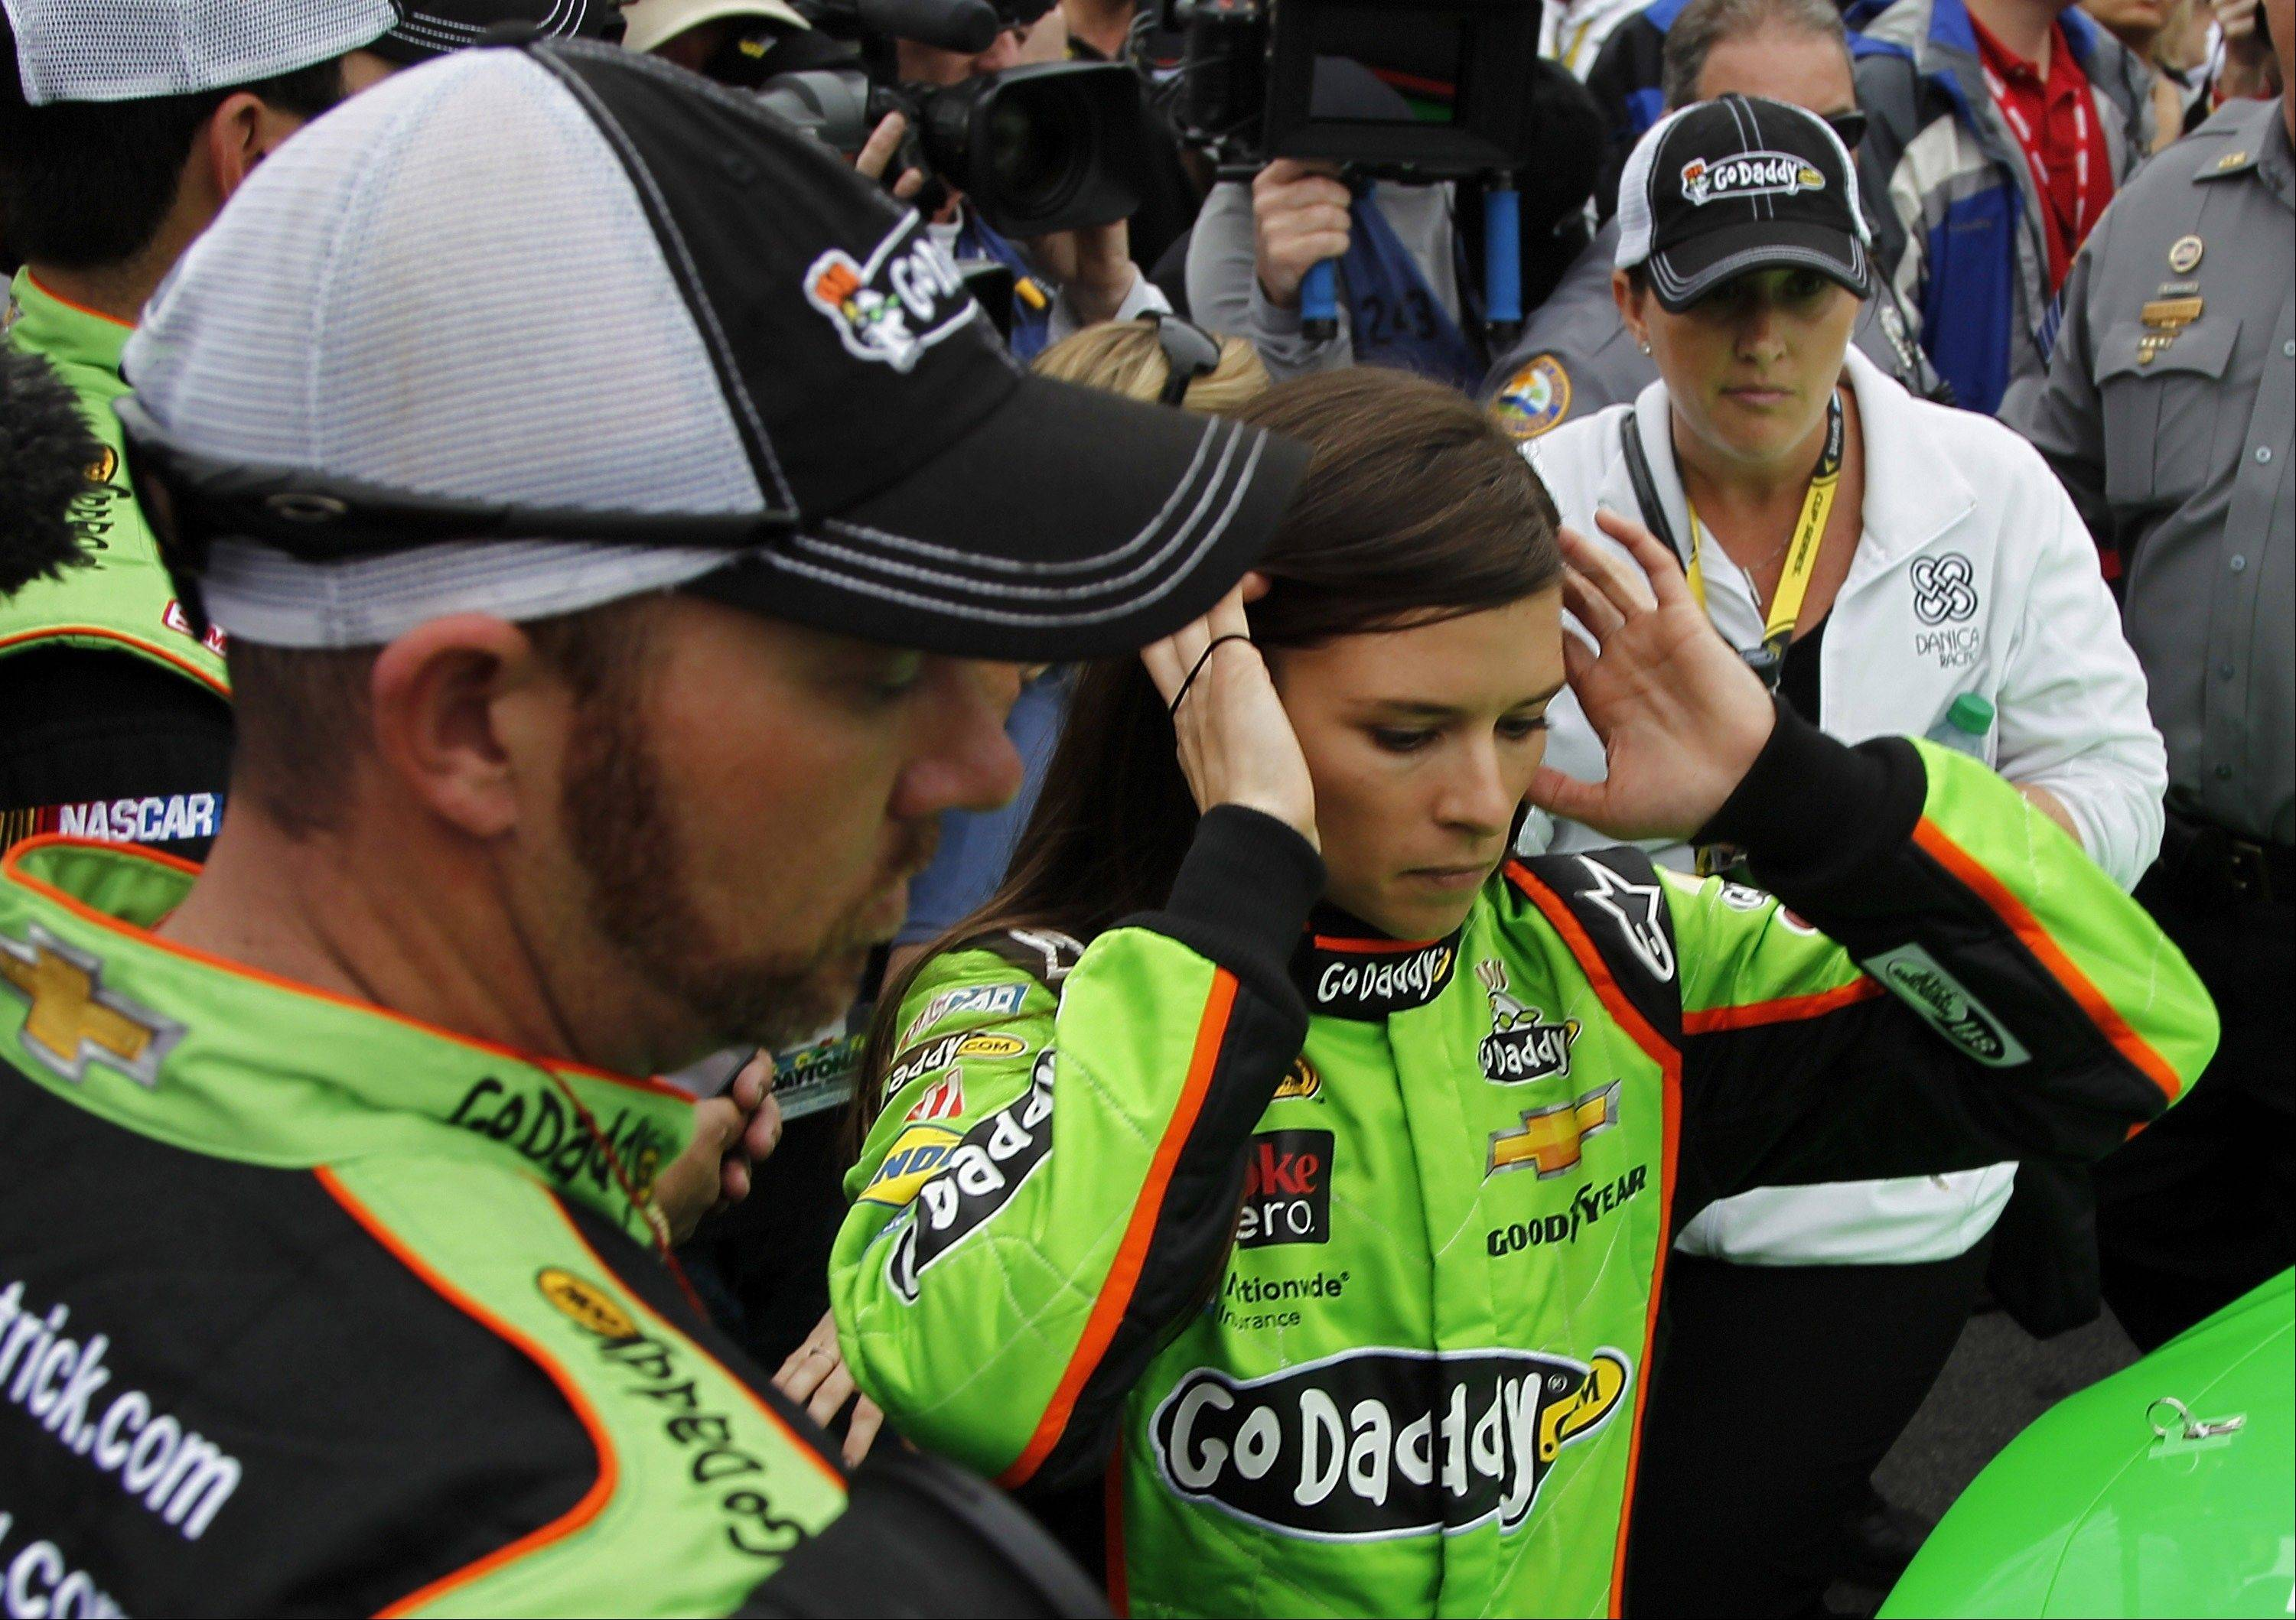 Danica Patrick prepares to get in her car before the start of the Daytona 500 at Daytona International Speedway on Sunday in Daytona Beach, Fla.